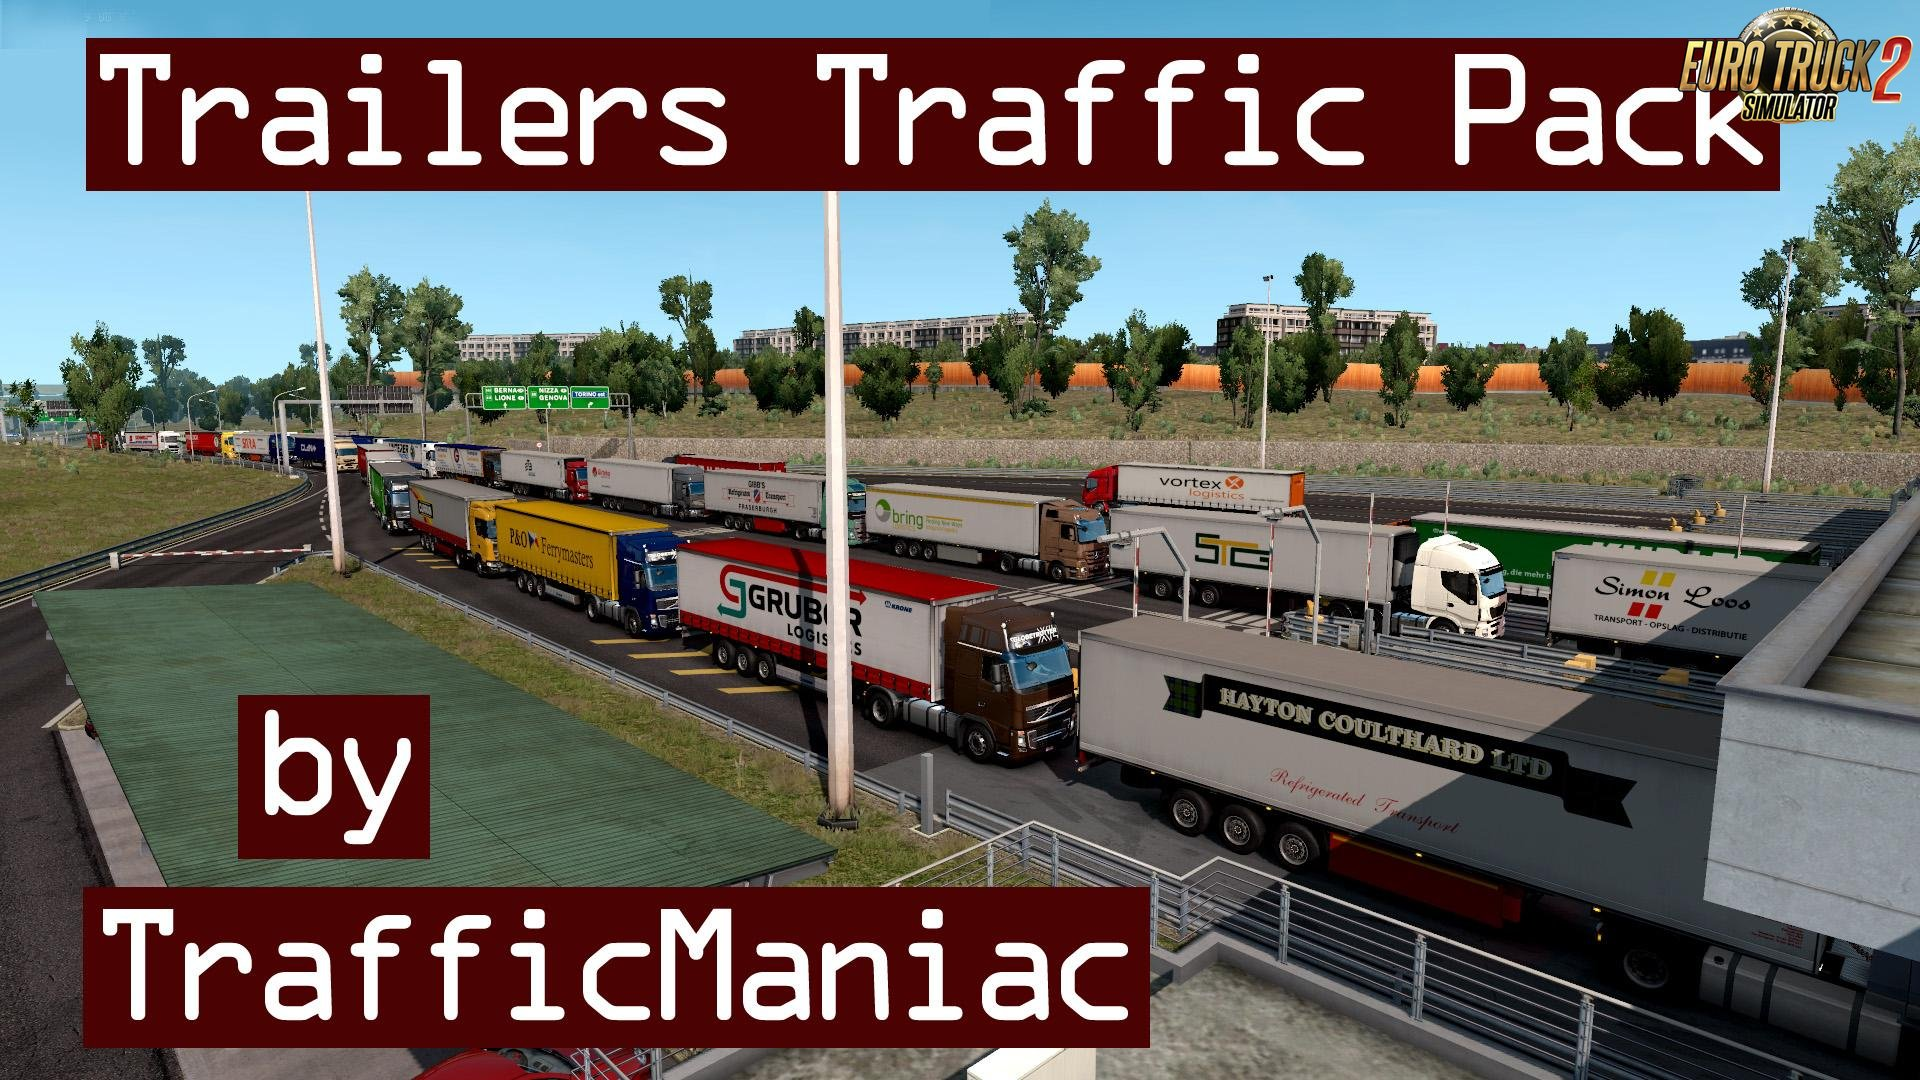 Trailers Traffic Pack v3.9 by TrafficManiac